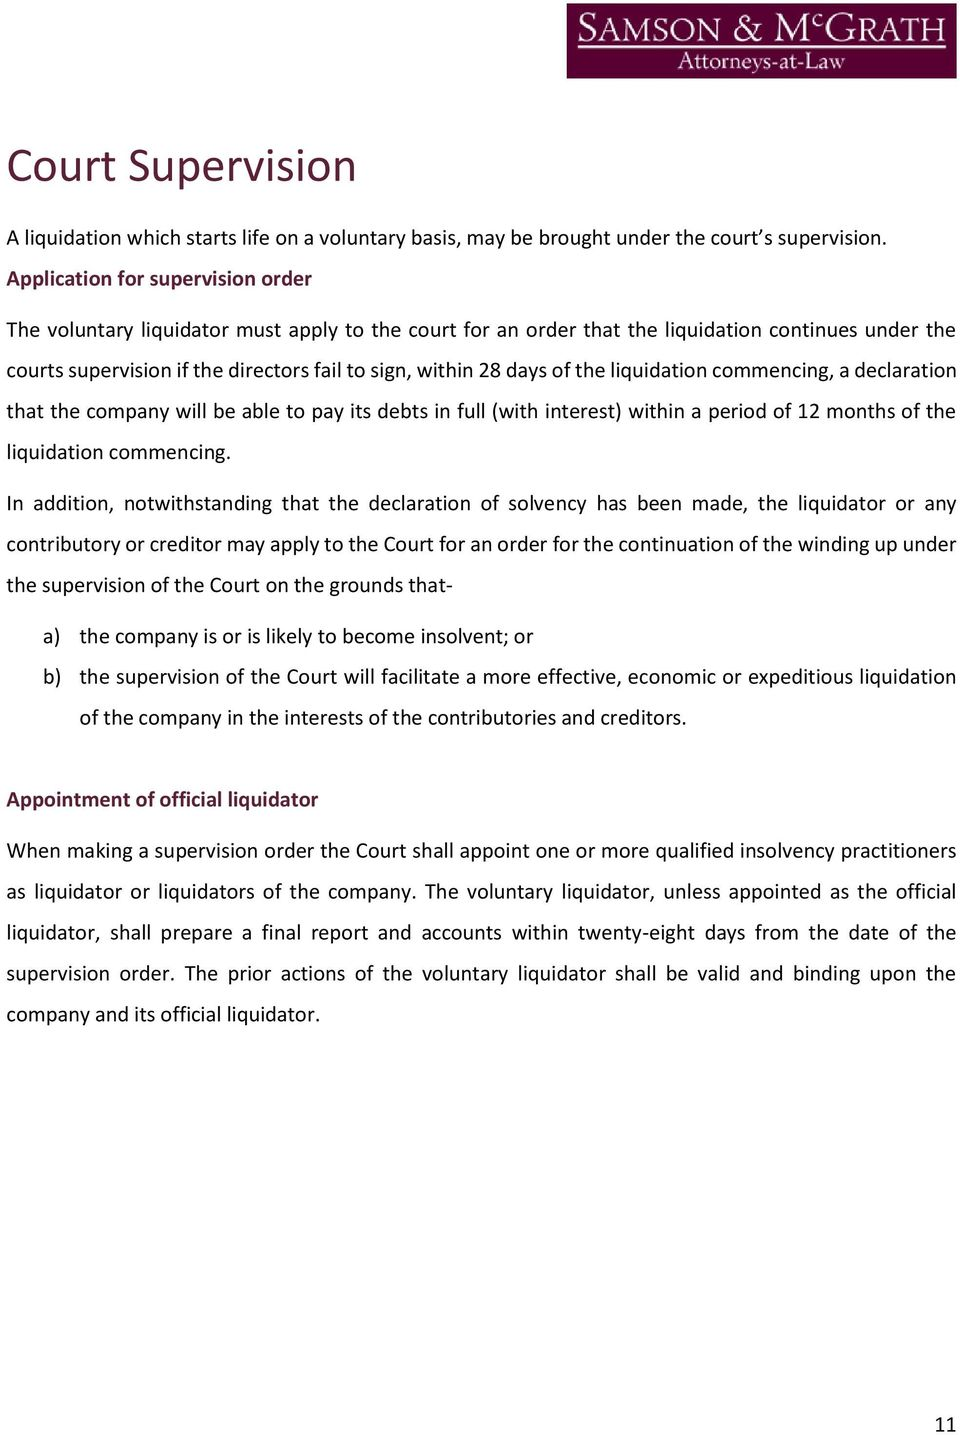 days of the liquidation commencing, a declaration that the company will be able to pay its debts in full (with interest) within a period of 12 months of the liquidation commencing.